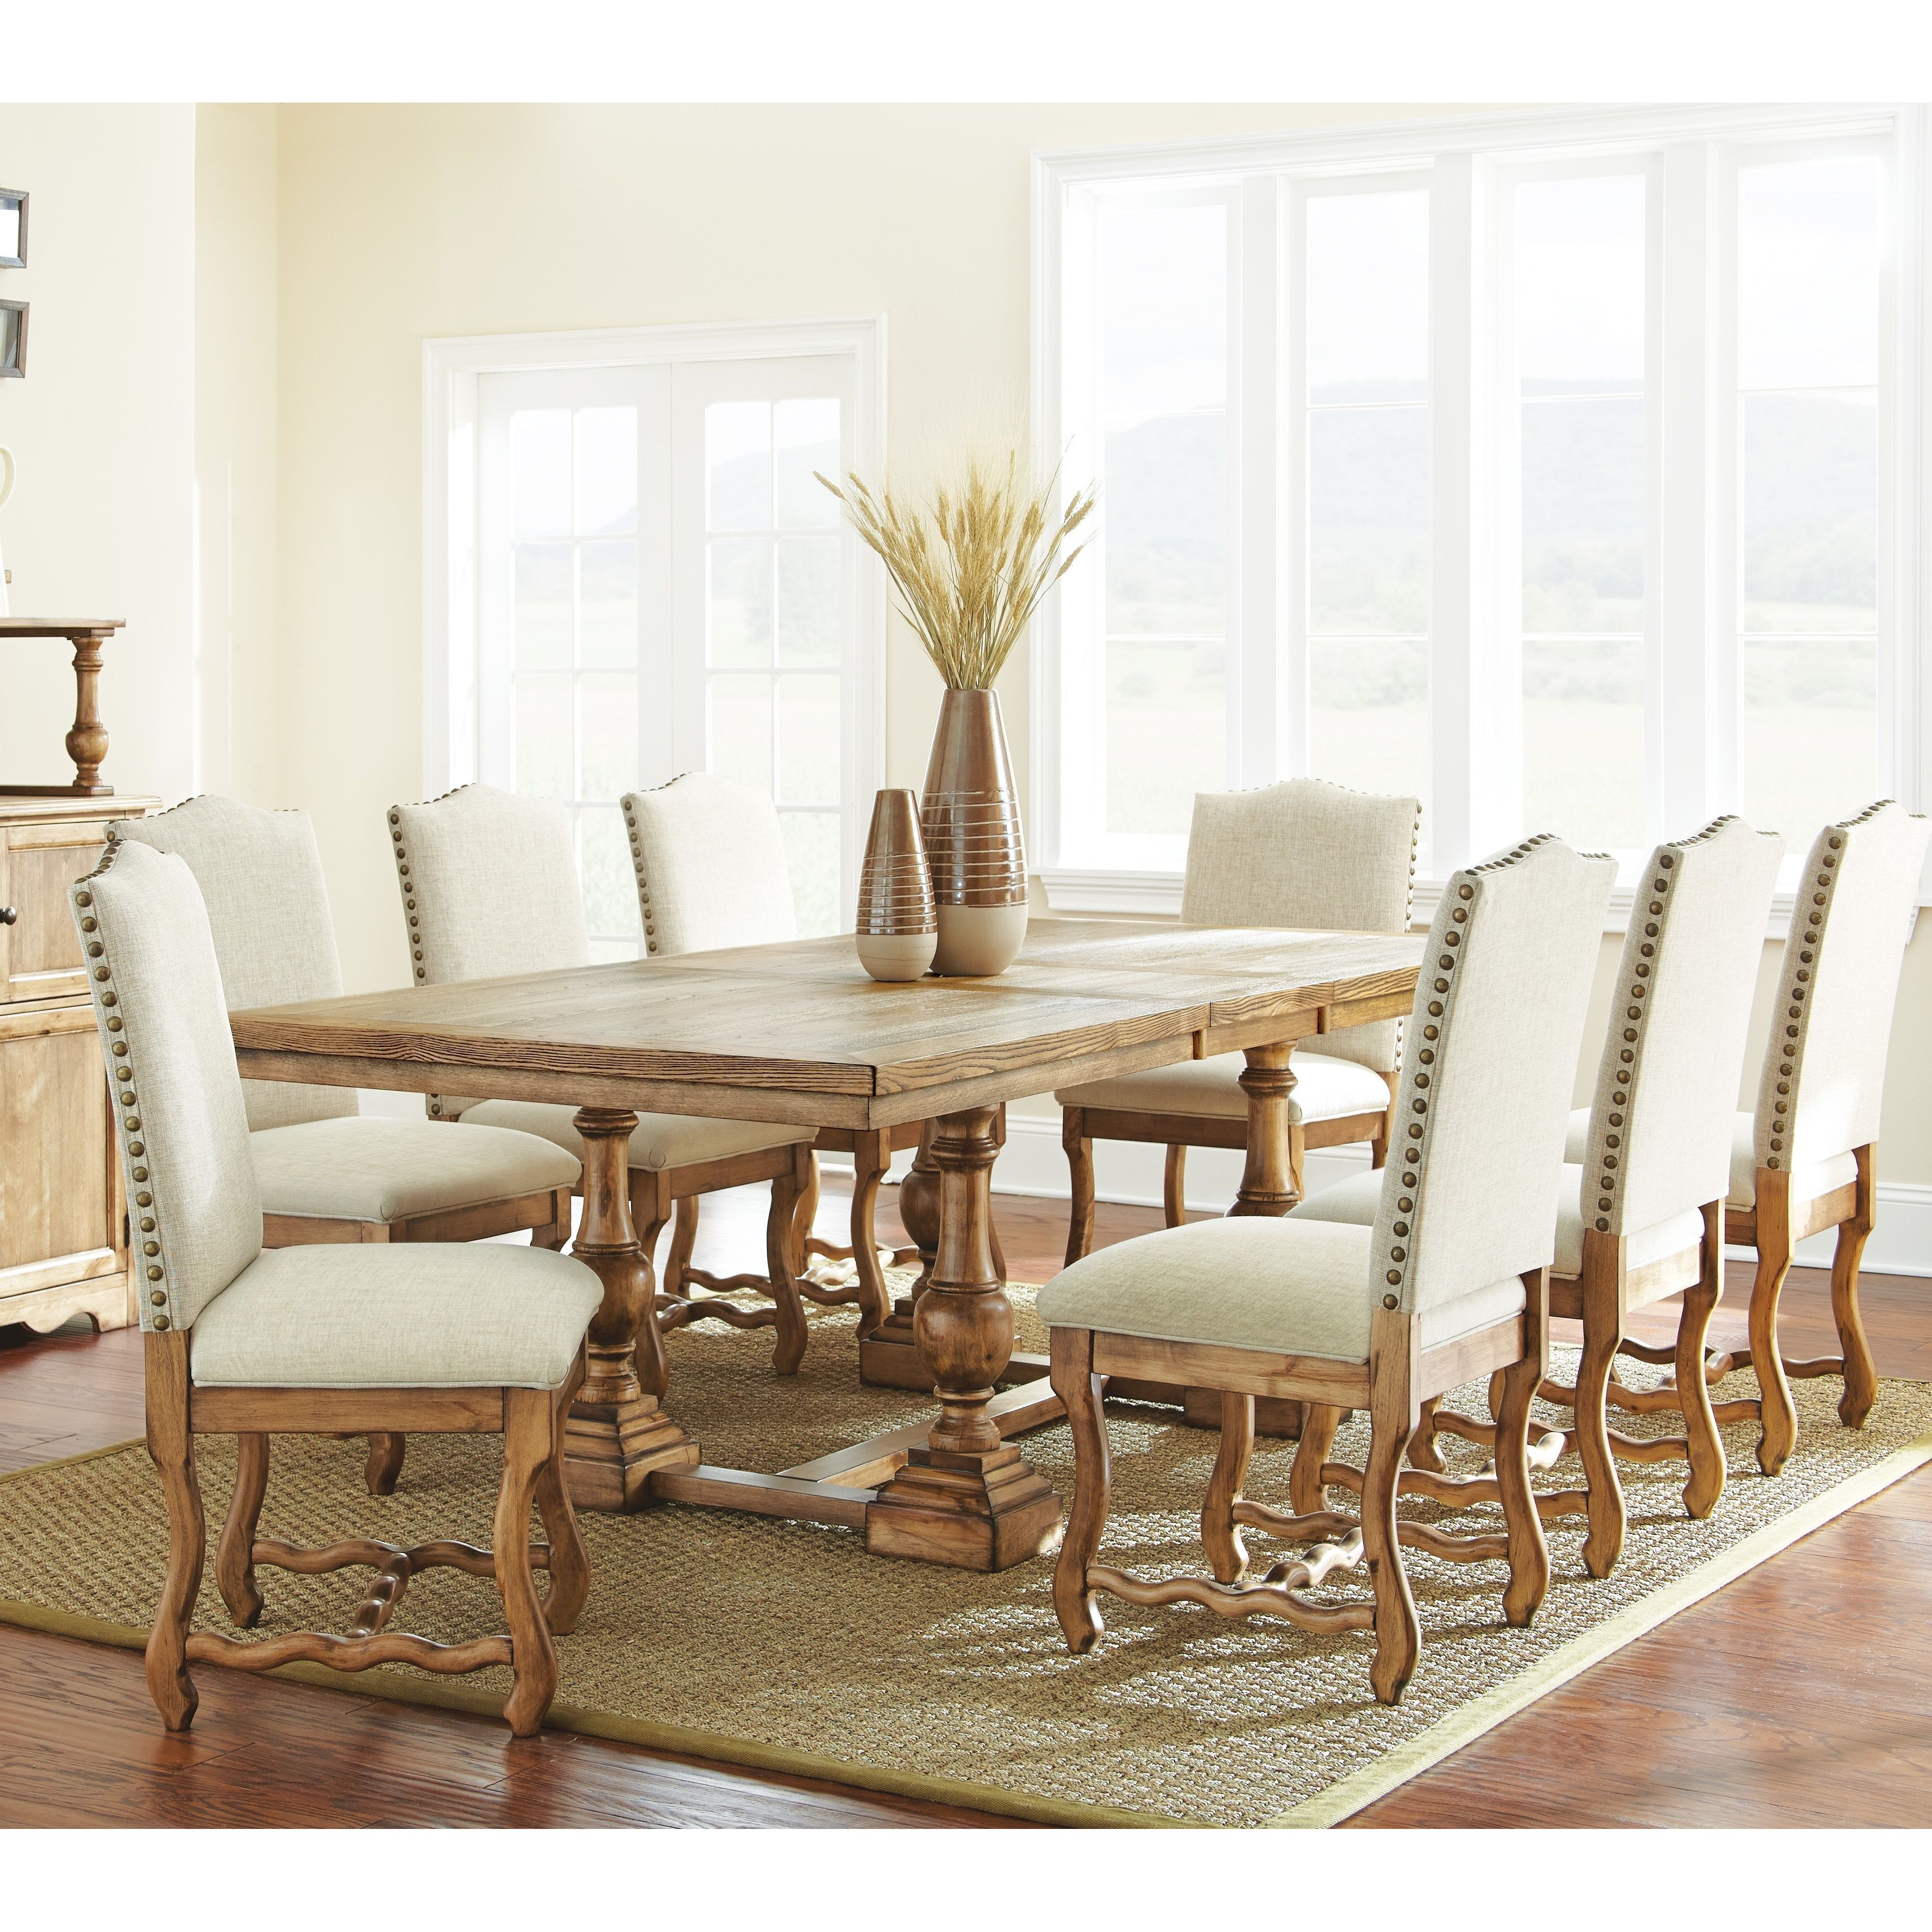 Steve Silver Furniture Plymouth 9 Piece Dining Set Cheap Dining